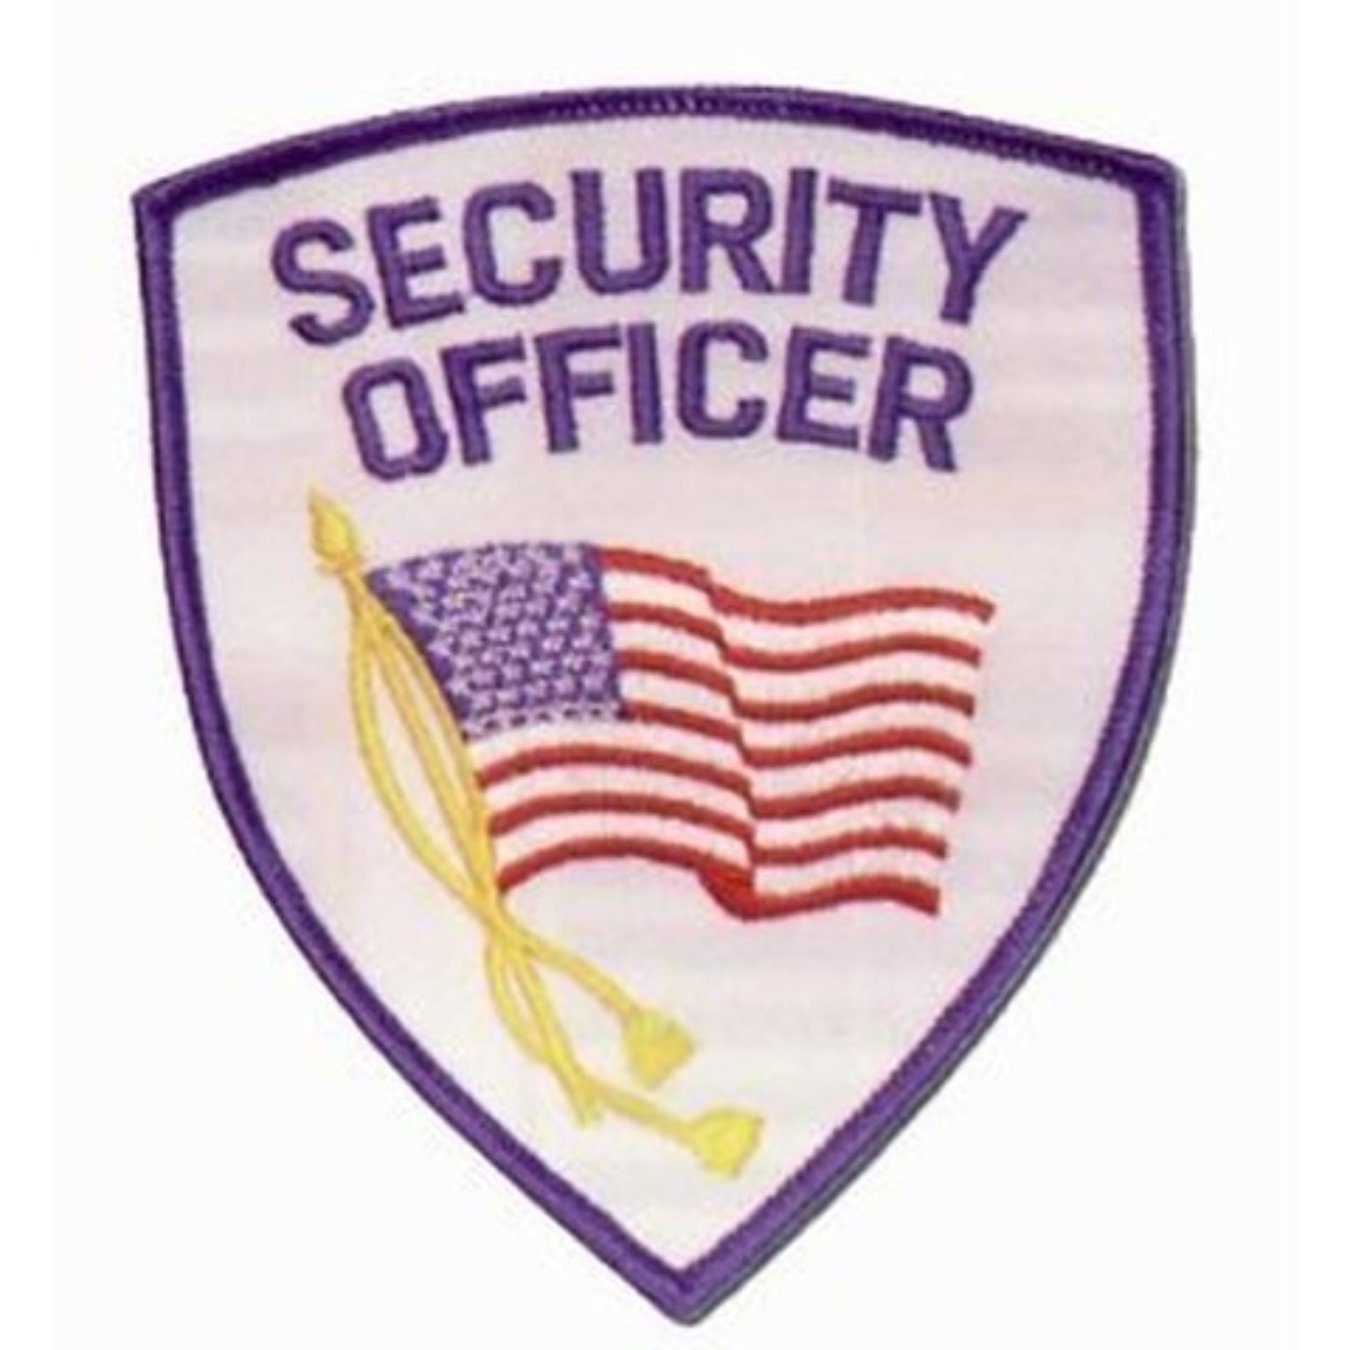 "SECURITY OFFICER Guard American Flag Shoulder Uniform Patch Emblem Insignia 4"" x 3-3/4"" (2 Patches Included, Pair !)"